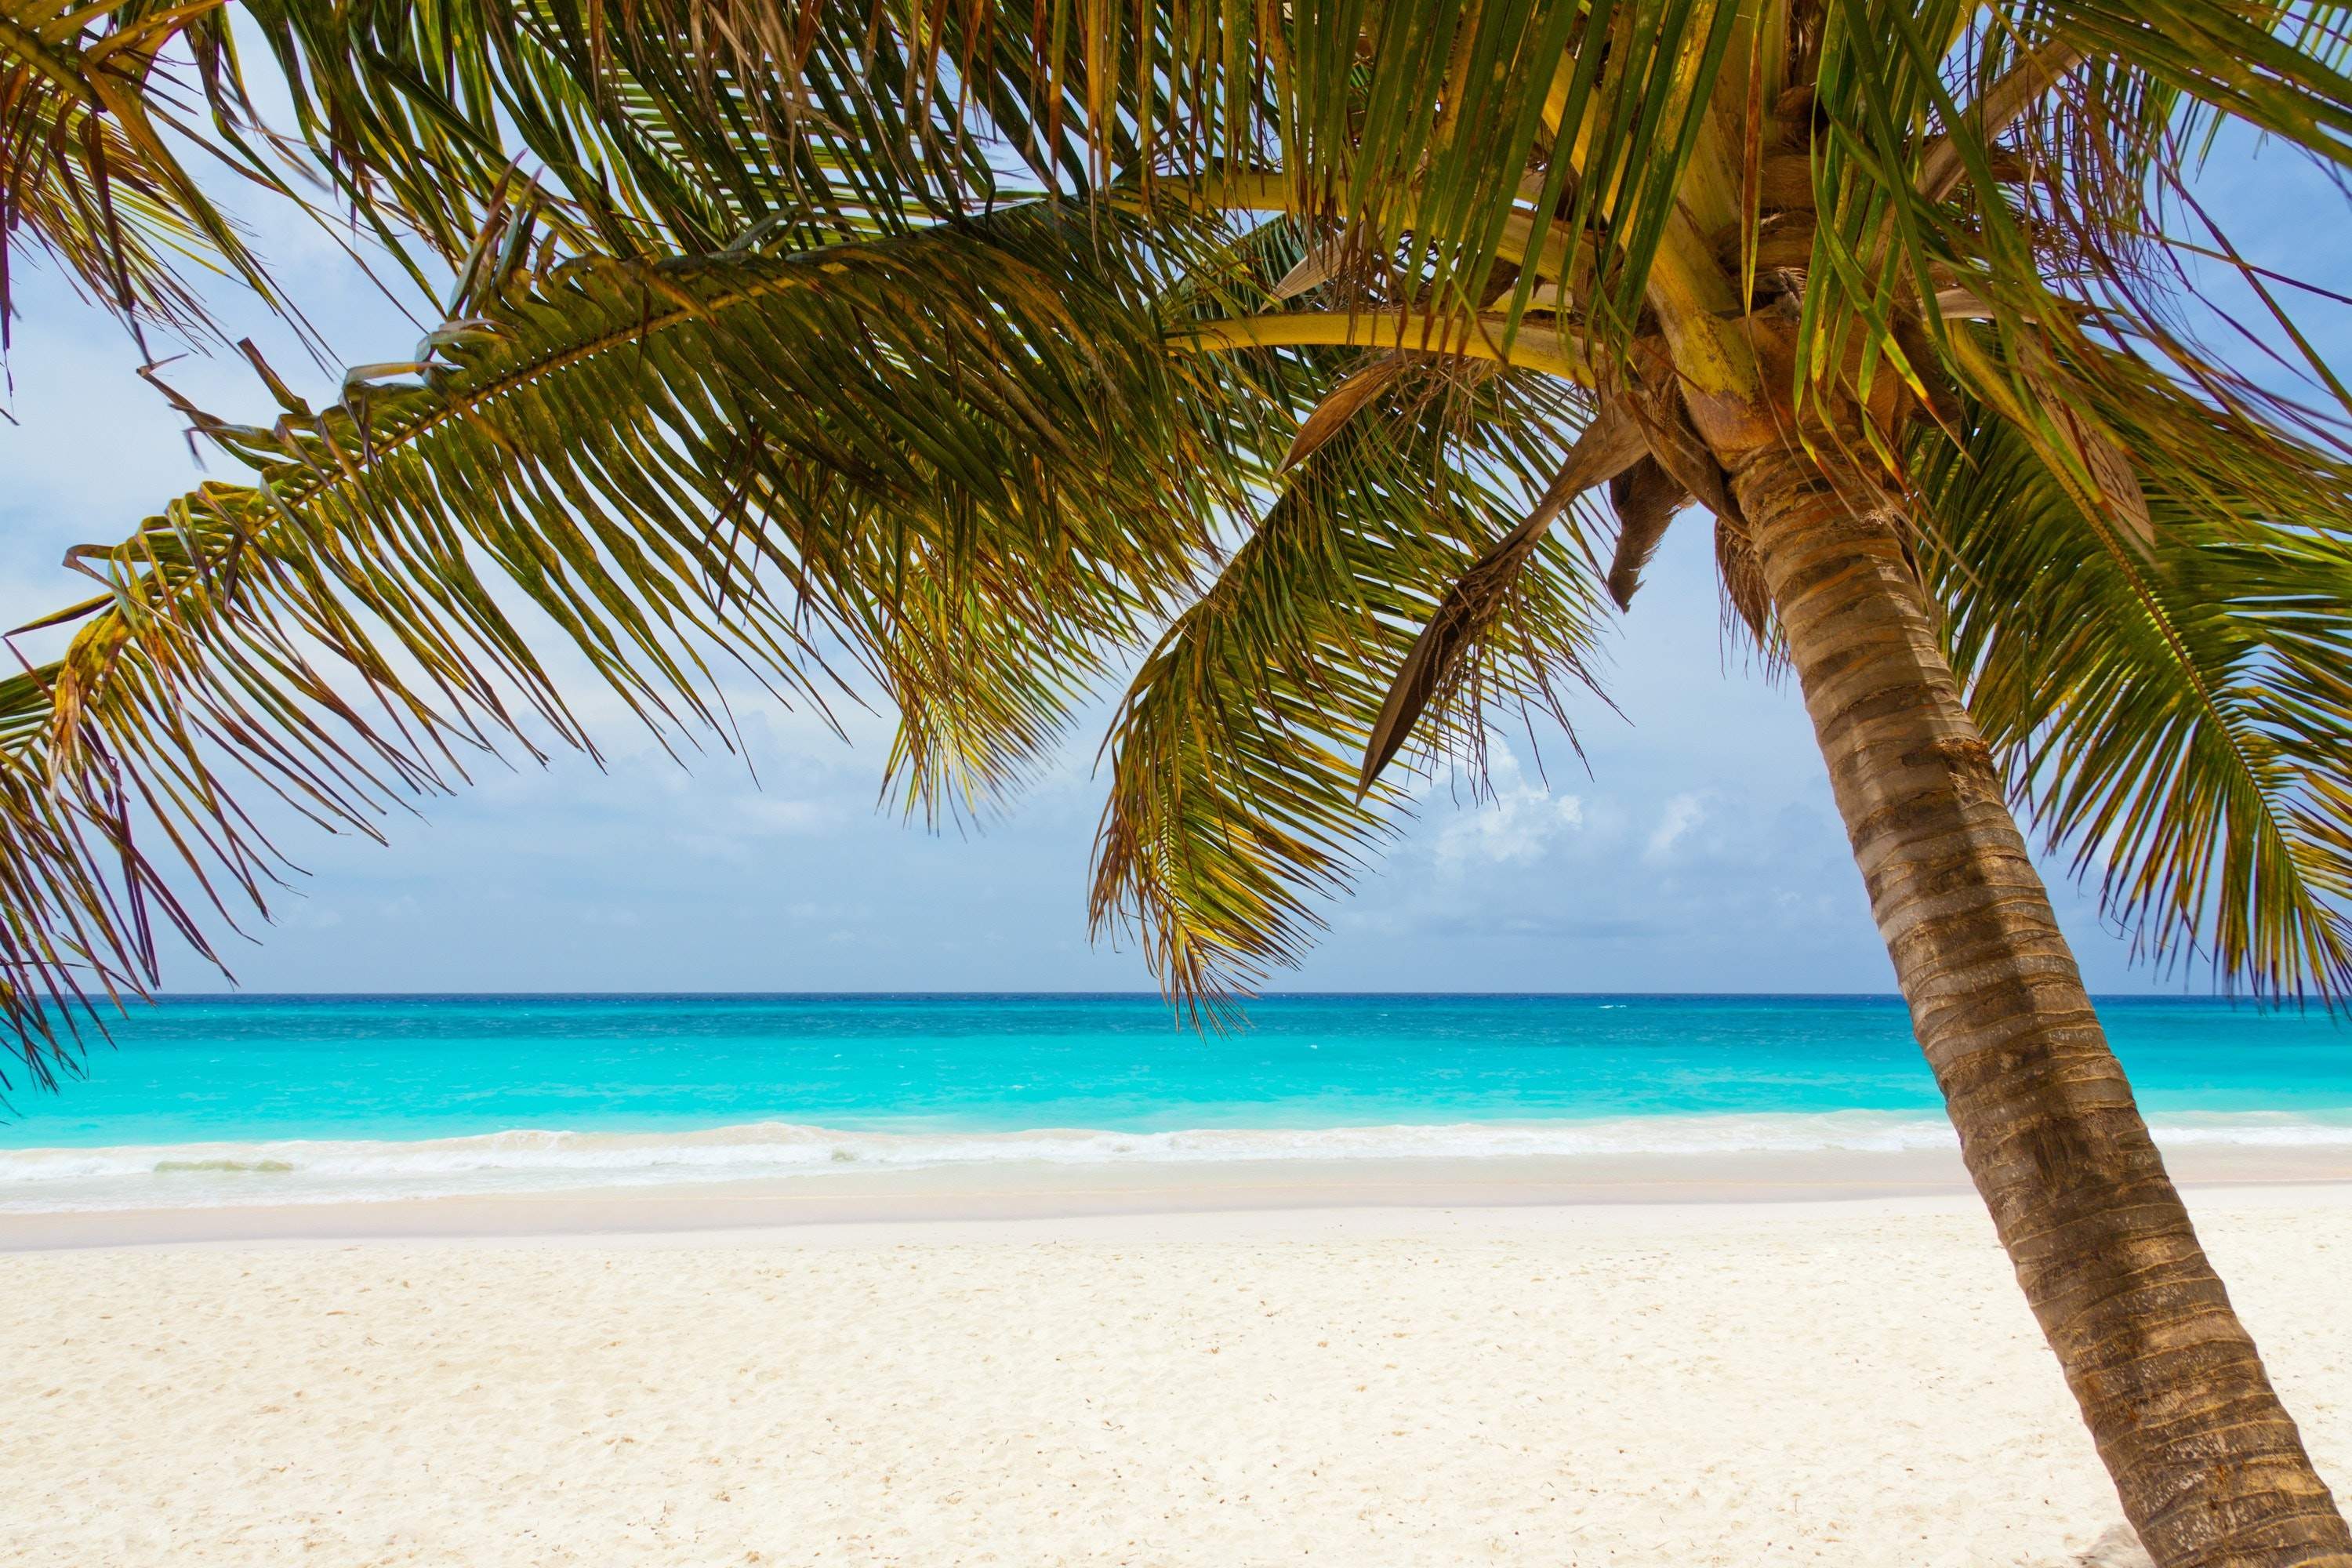 Green palm tree on beach during daytime photo